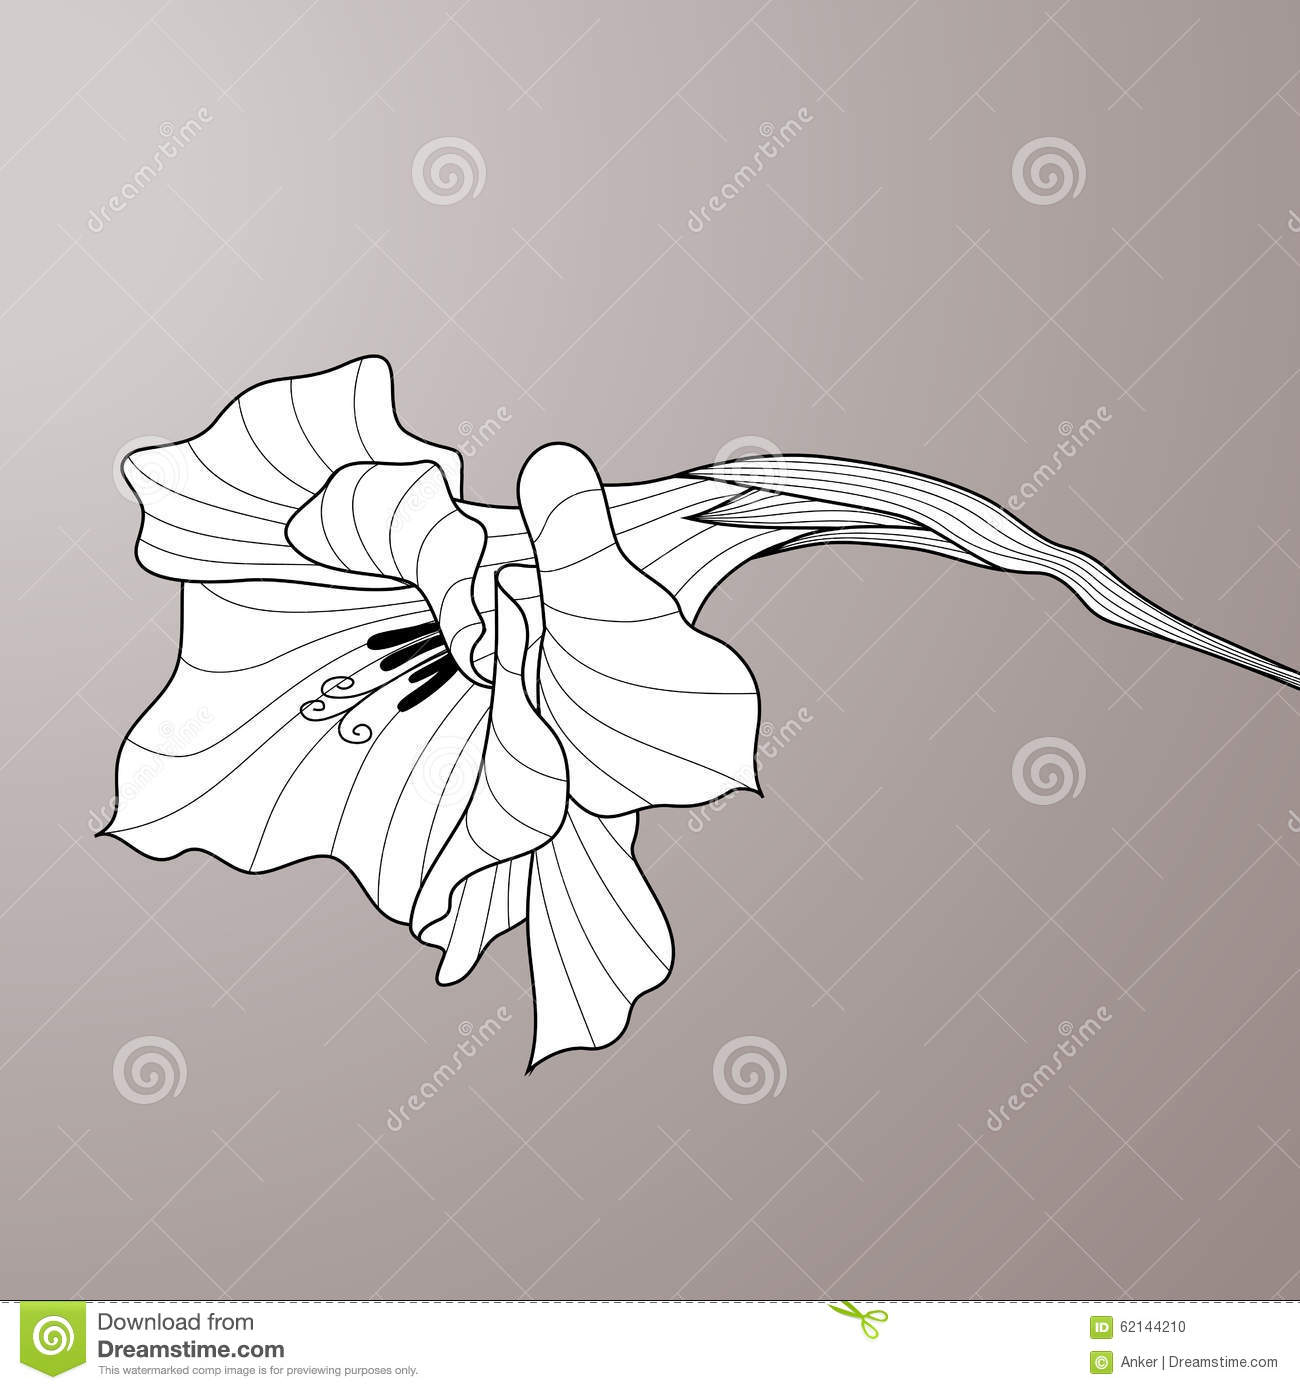 Contour Line Drawing Of A Flower : Flower gladiolus contour graphic art stock vector